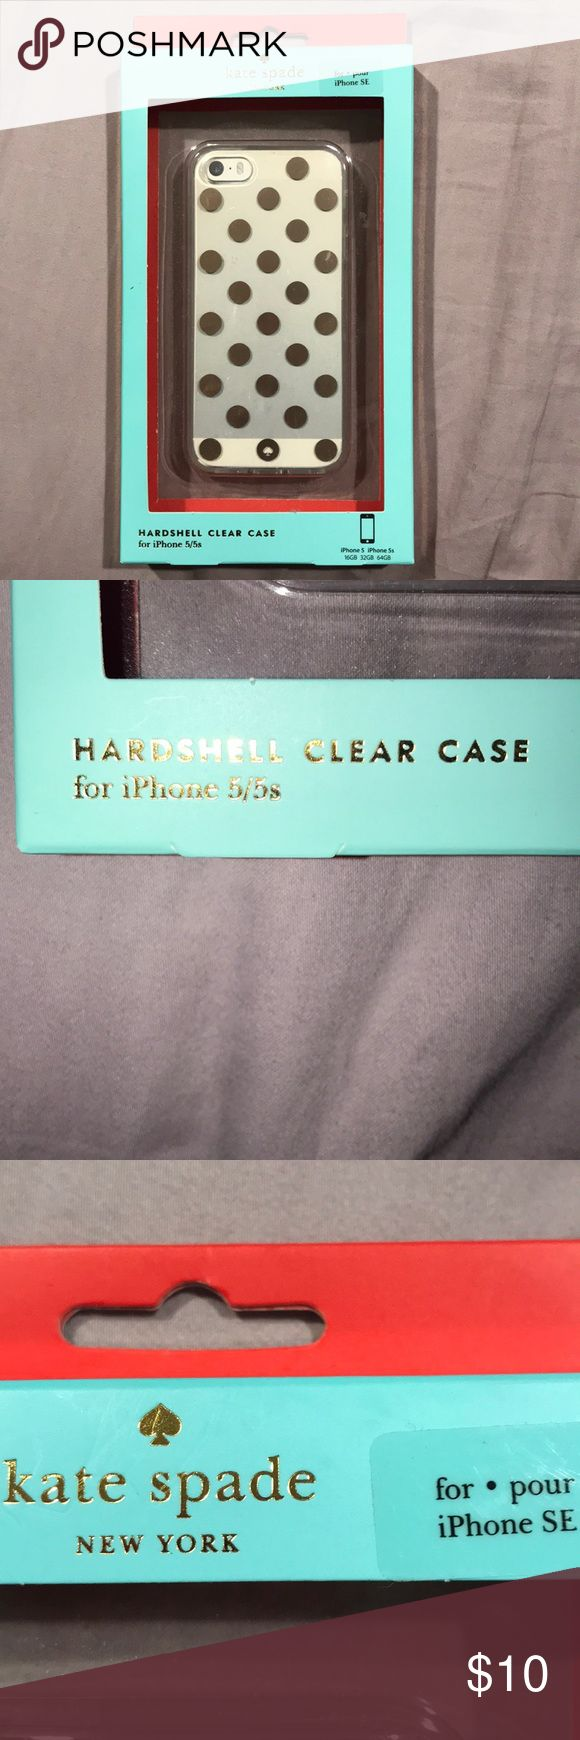 Kate Spade iphone 5s silver case brand new never opened box iphone 5S Kate Spade case. kate spade Accessories Phone Cases